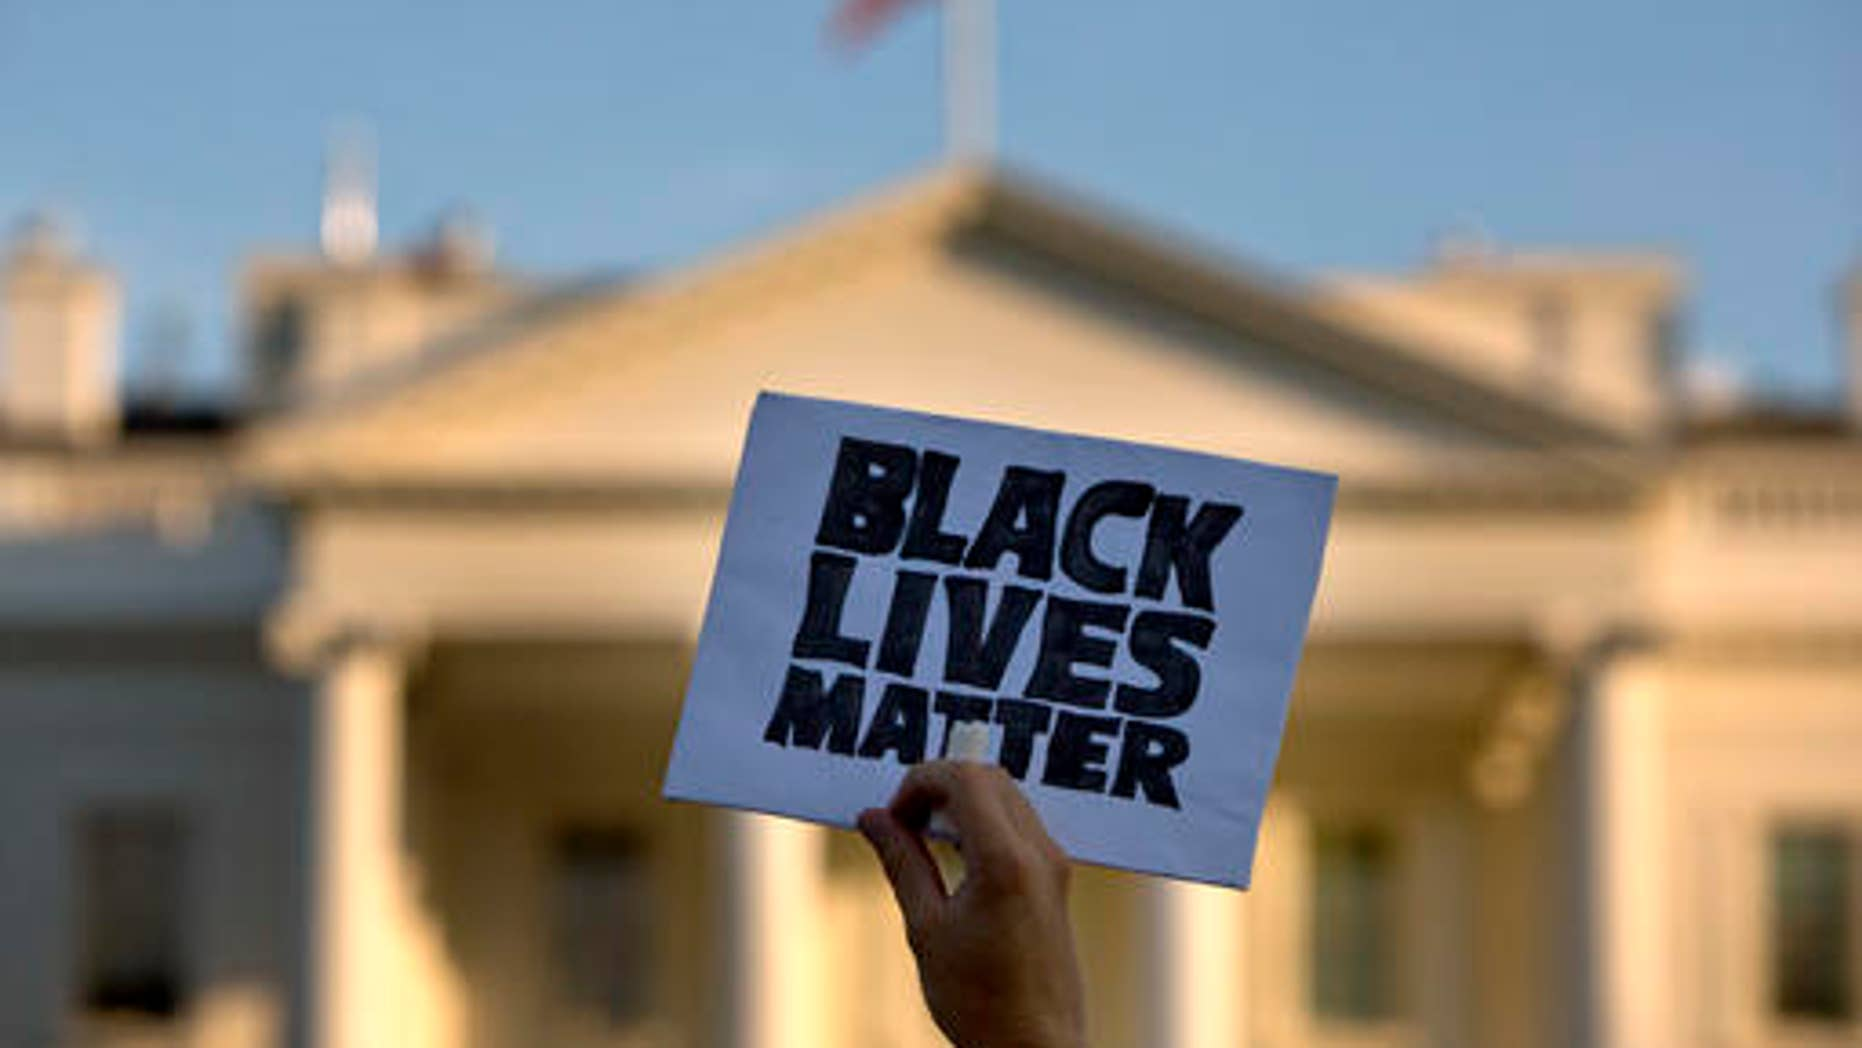 """A man holds up a sign saying """"Black Lives Matter"""" during a protest of shootings by police, at the White House in Washington, on July 8, 2016."""